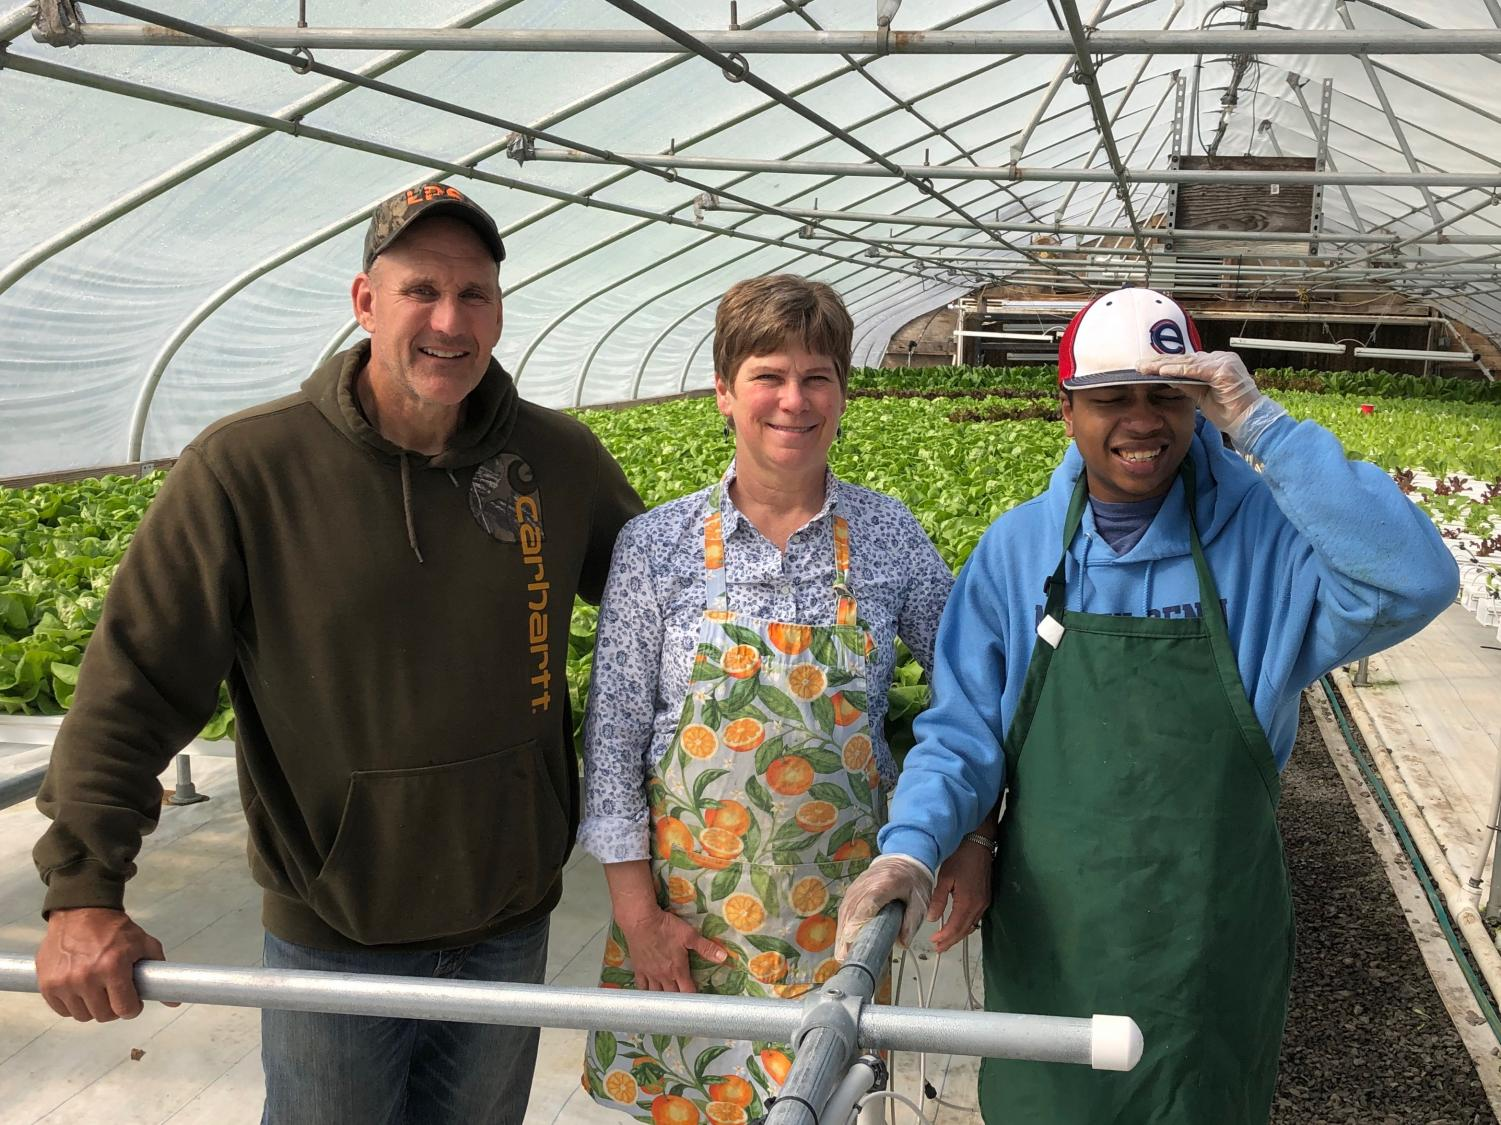 Landes with a student at GreenWorks Farm, a site she takes students to as a job coach.